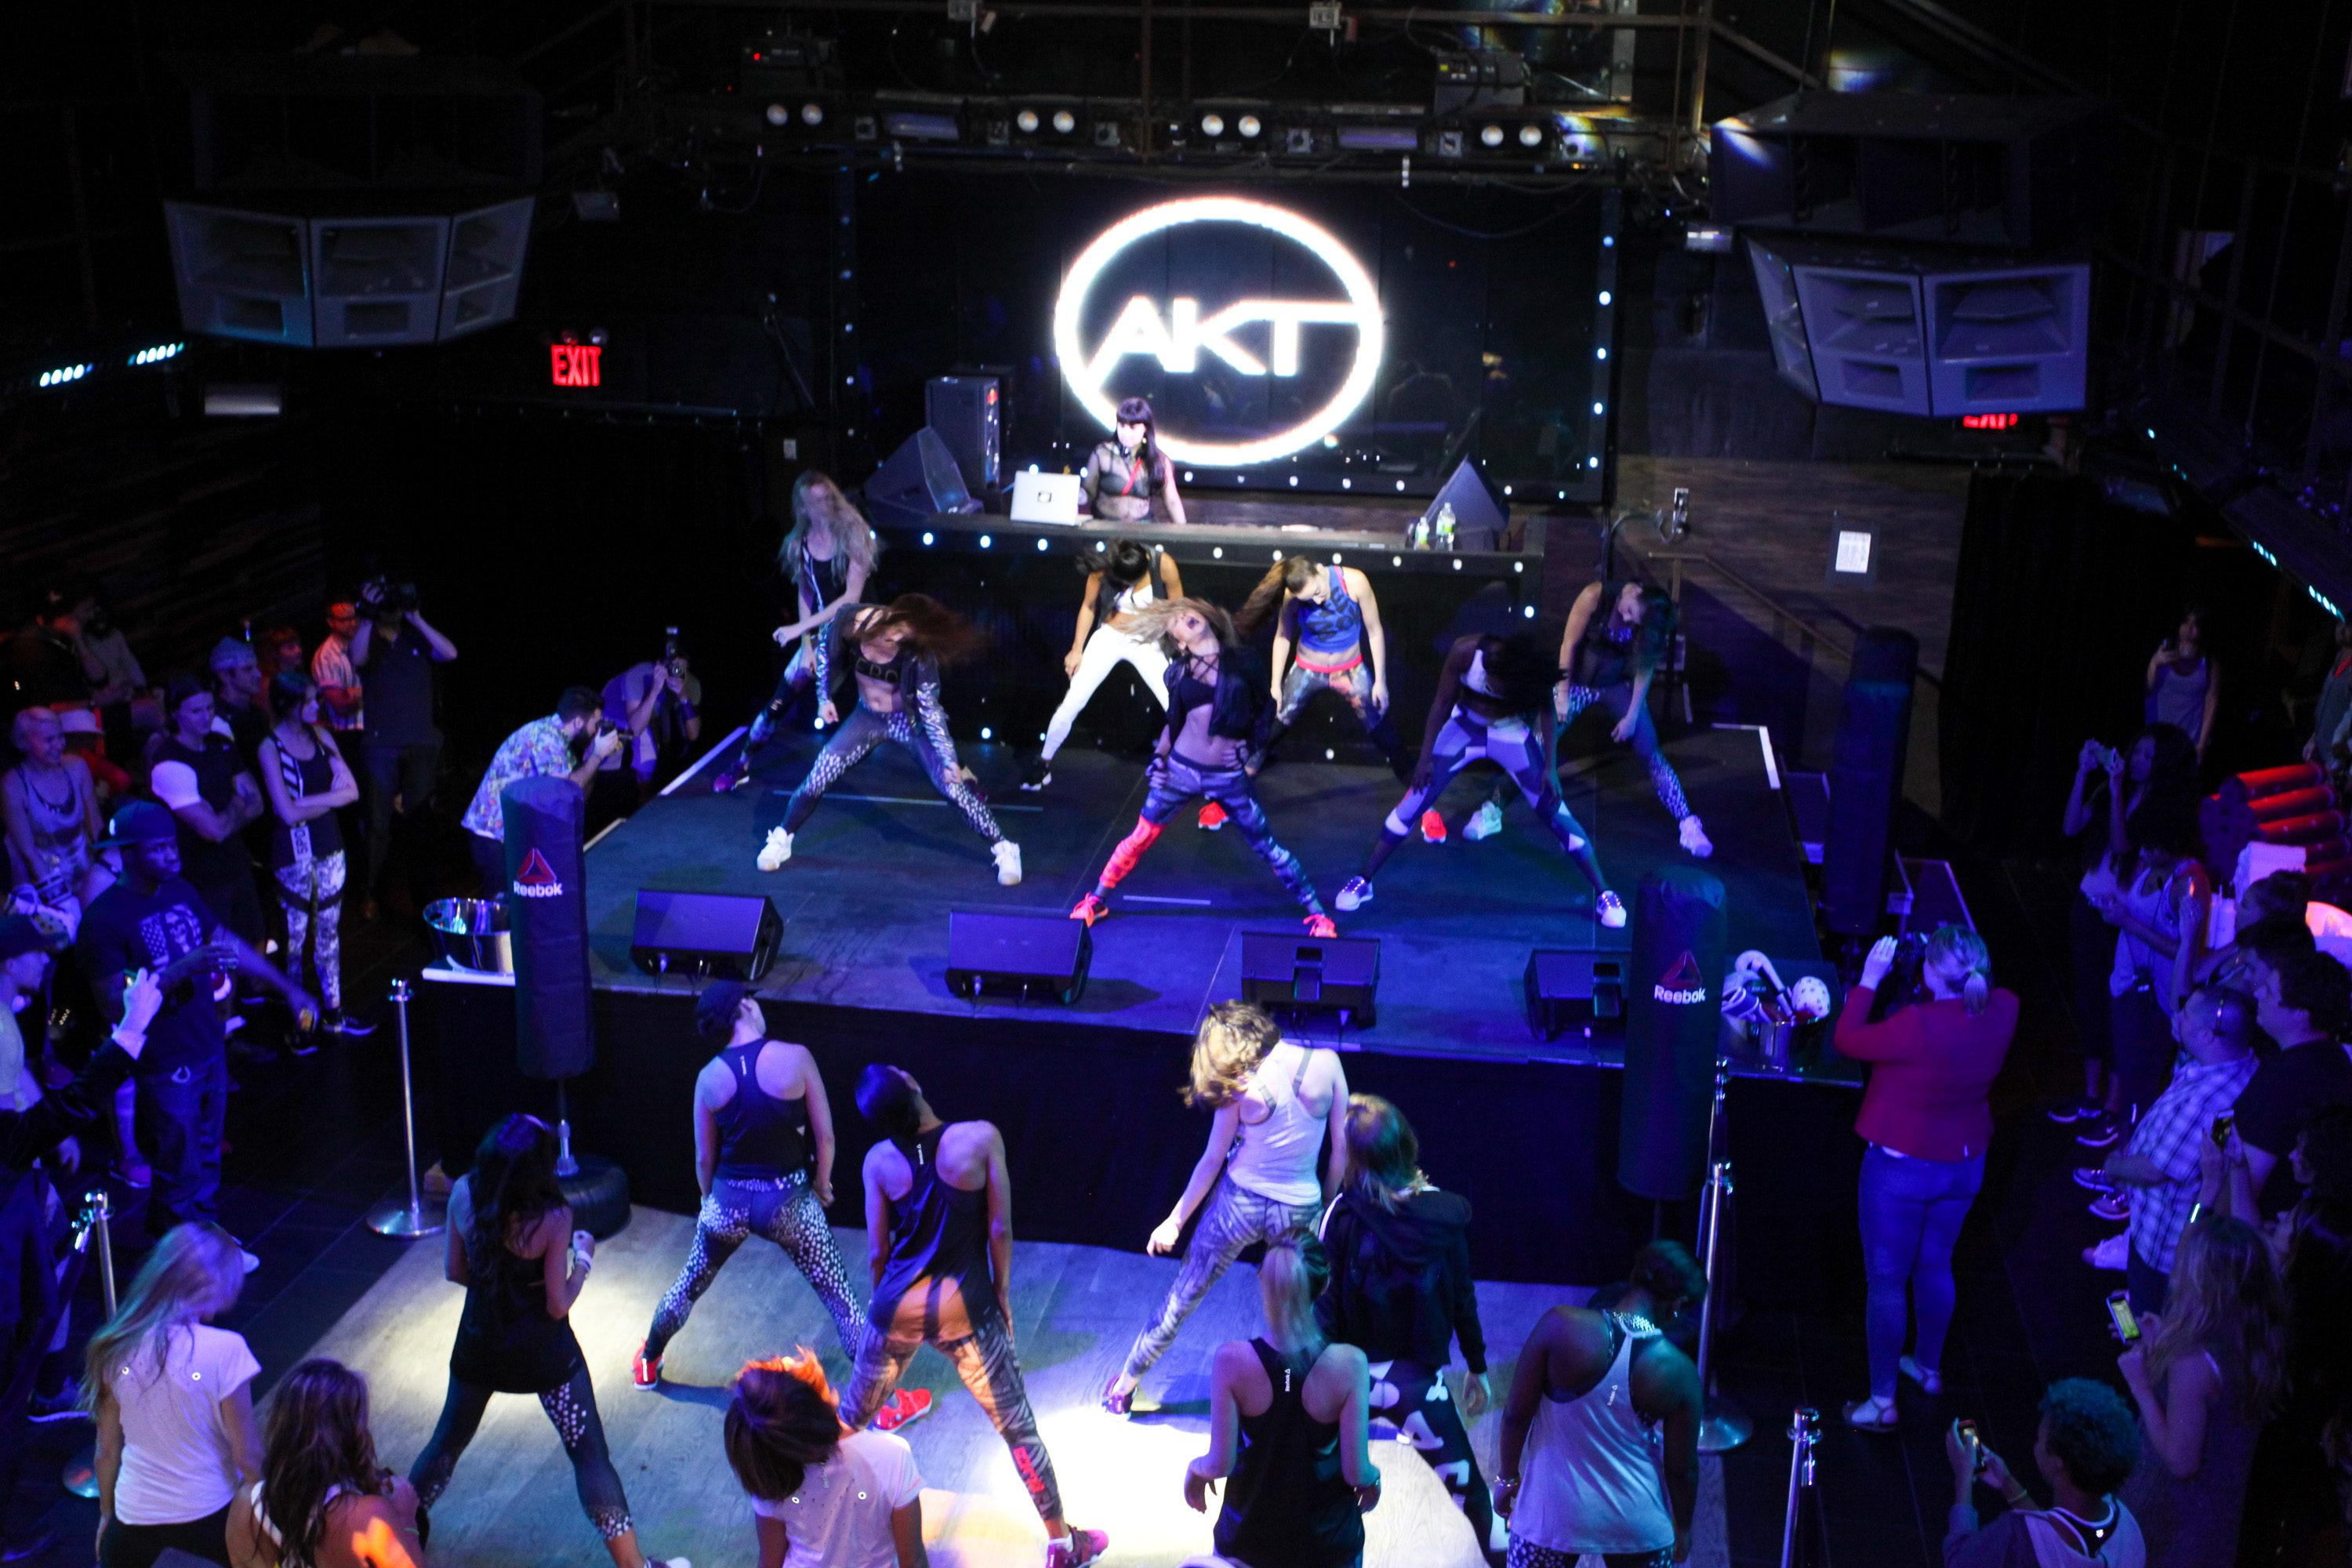 NEW YORK, NY - SEPTEMBER 16: Guests participate in the AKT in Motion Class at Marquee on September 16, 2015 in New York City. (Photo by Donald Bowers/Getty Images for Reebok)